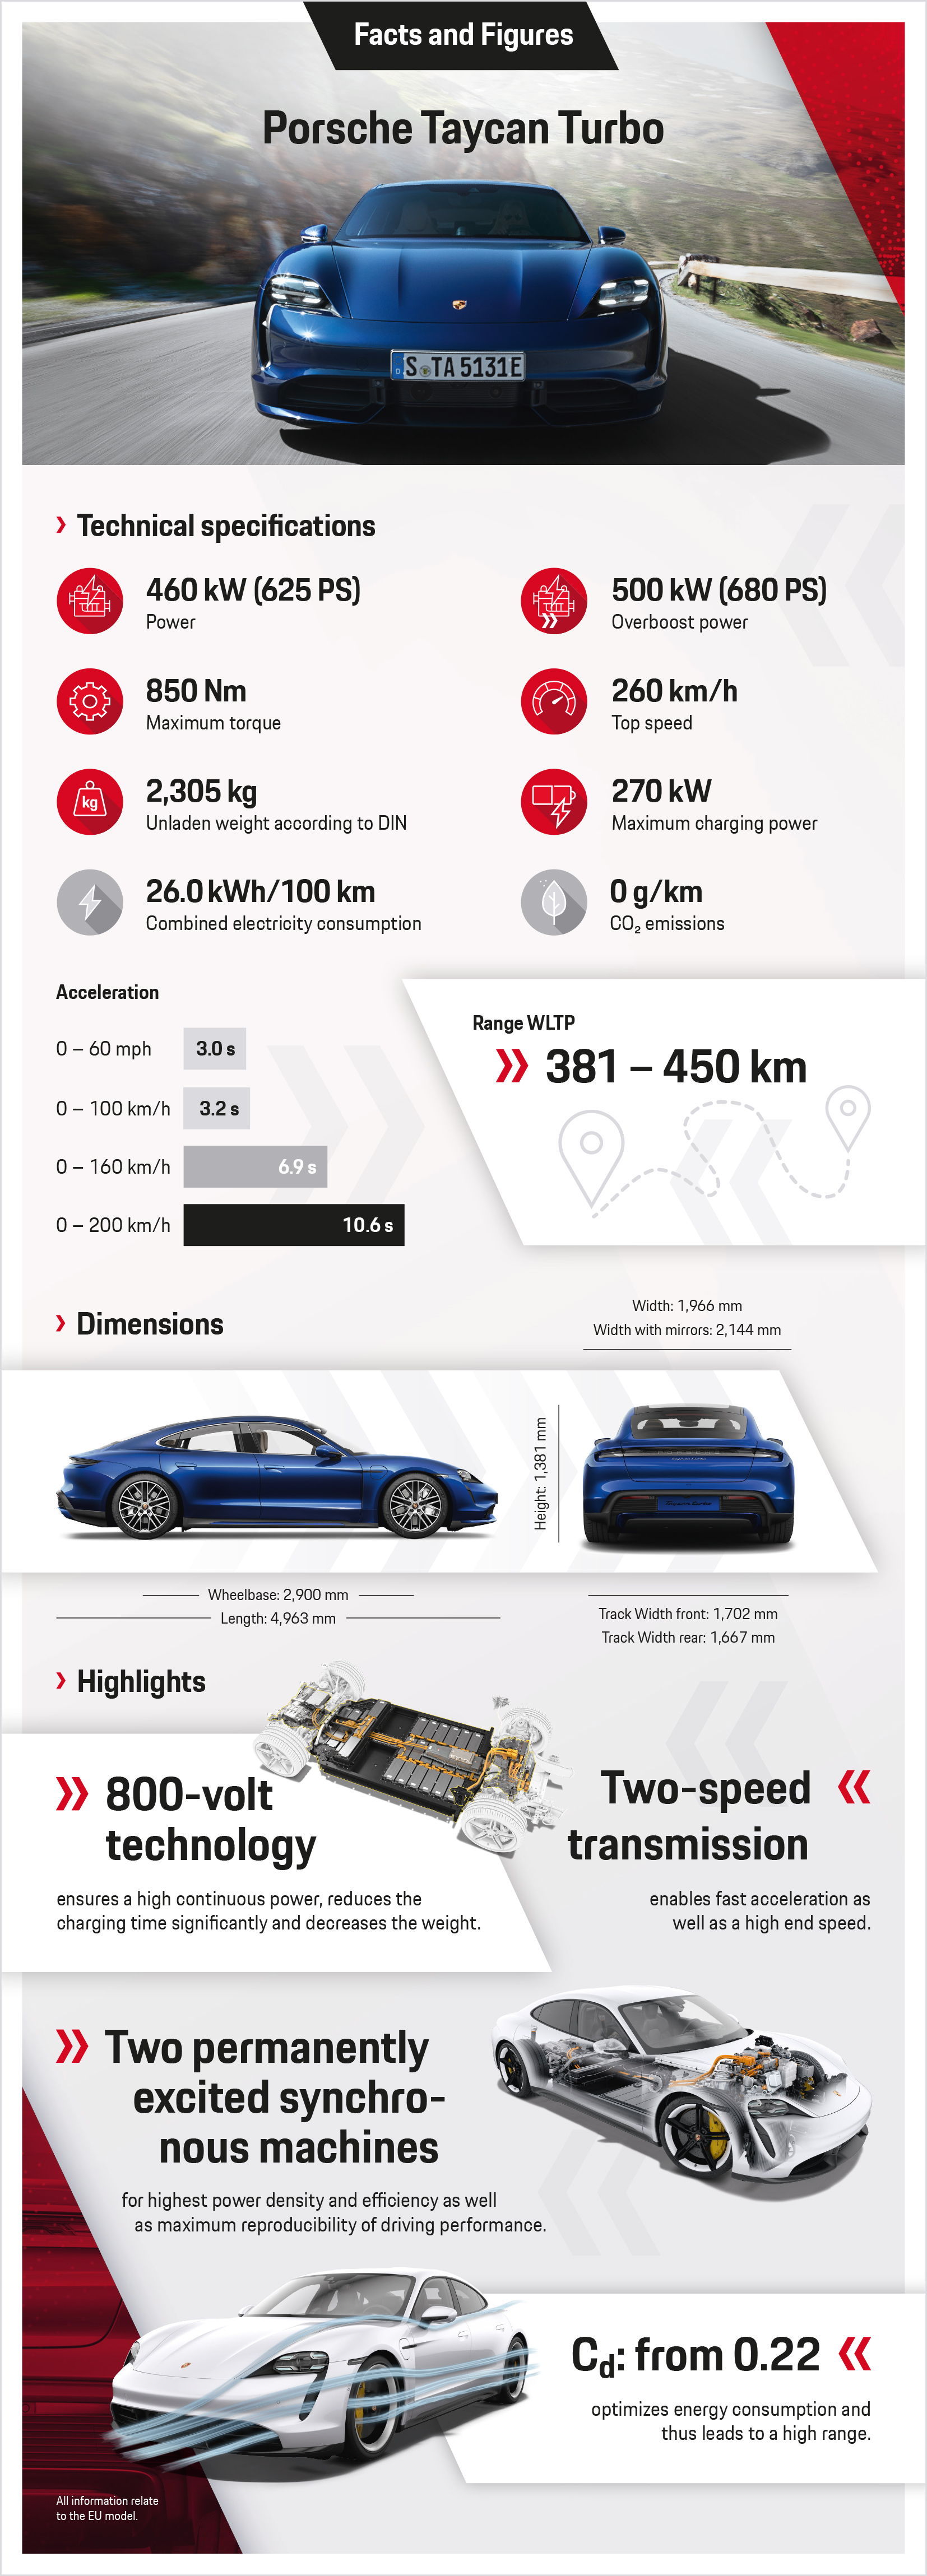 Taycan Turbo, infographic, 2019, Porsche AG